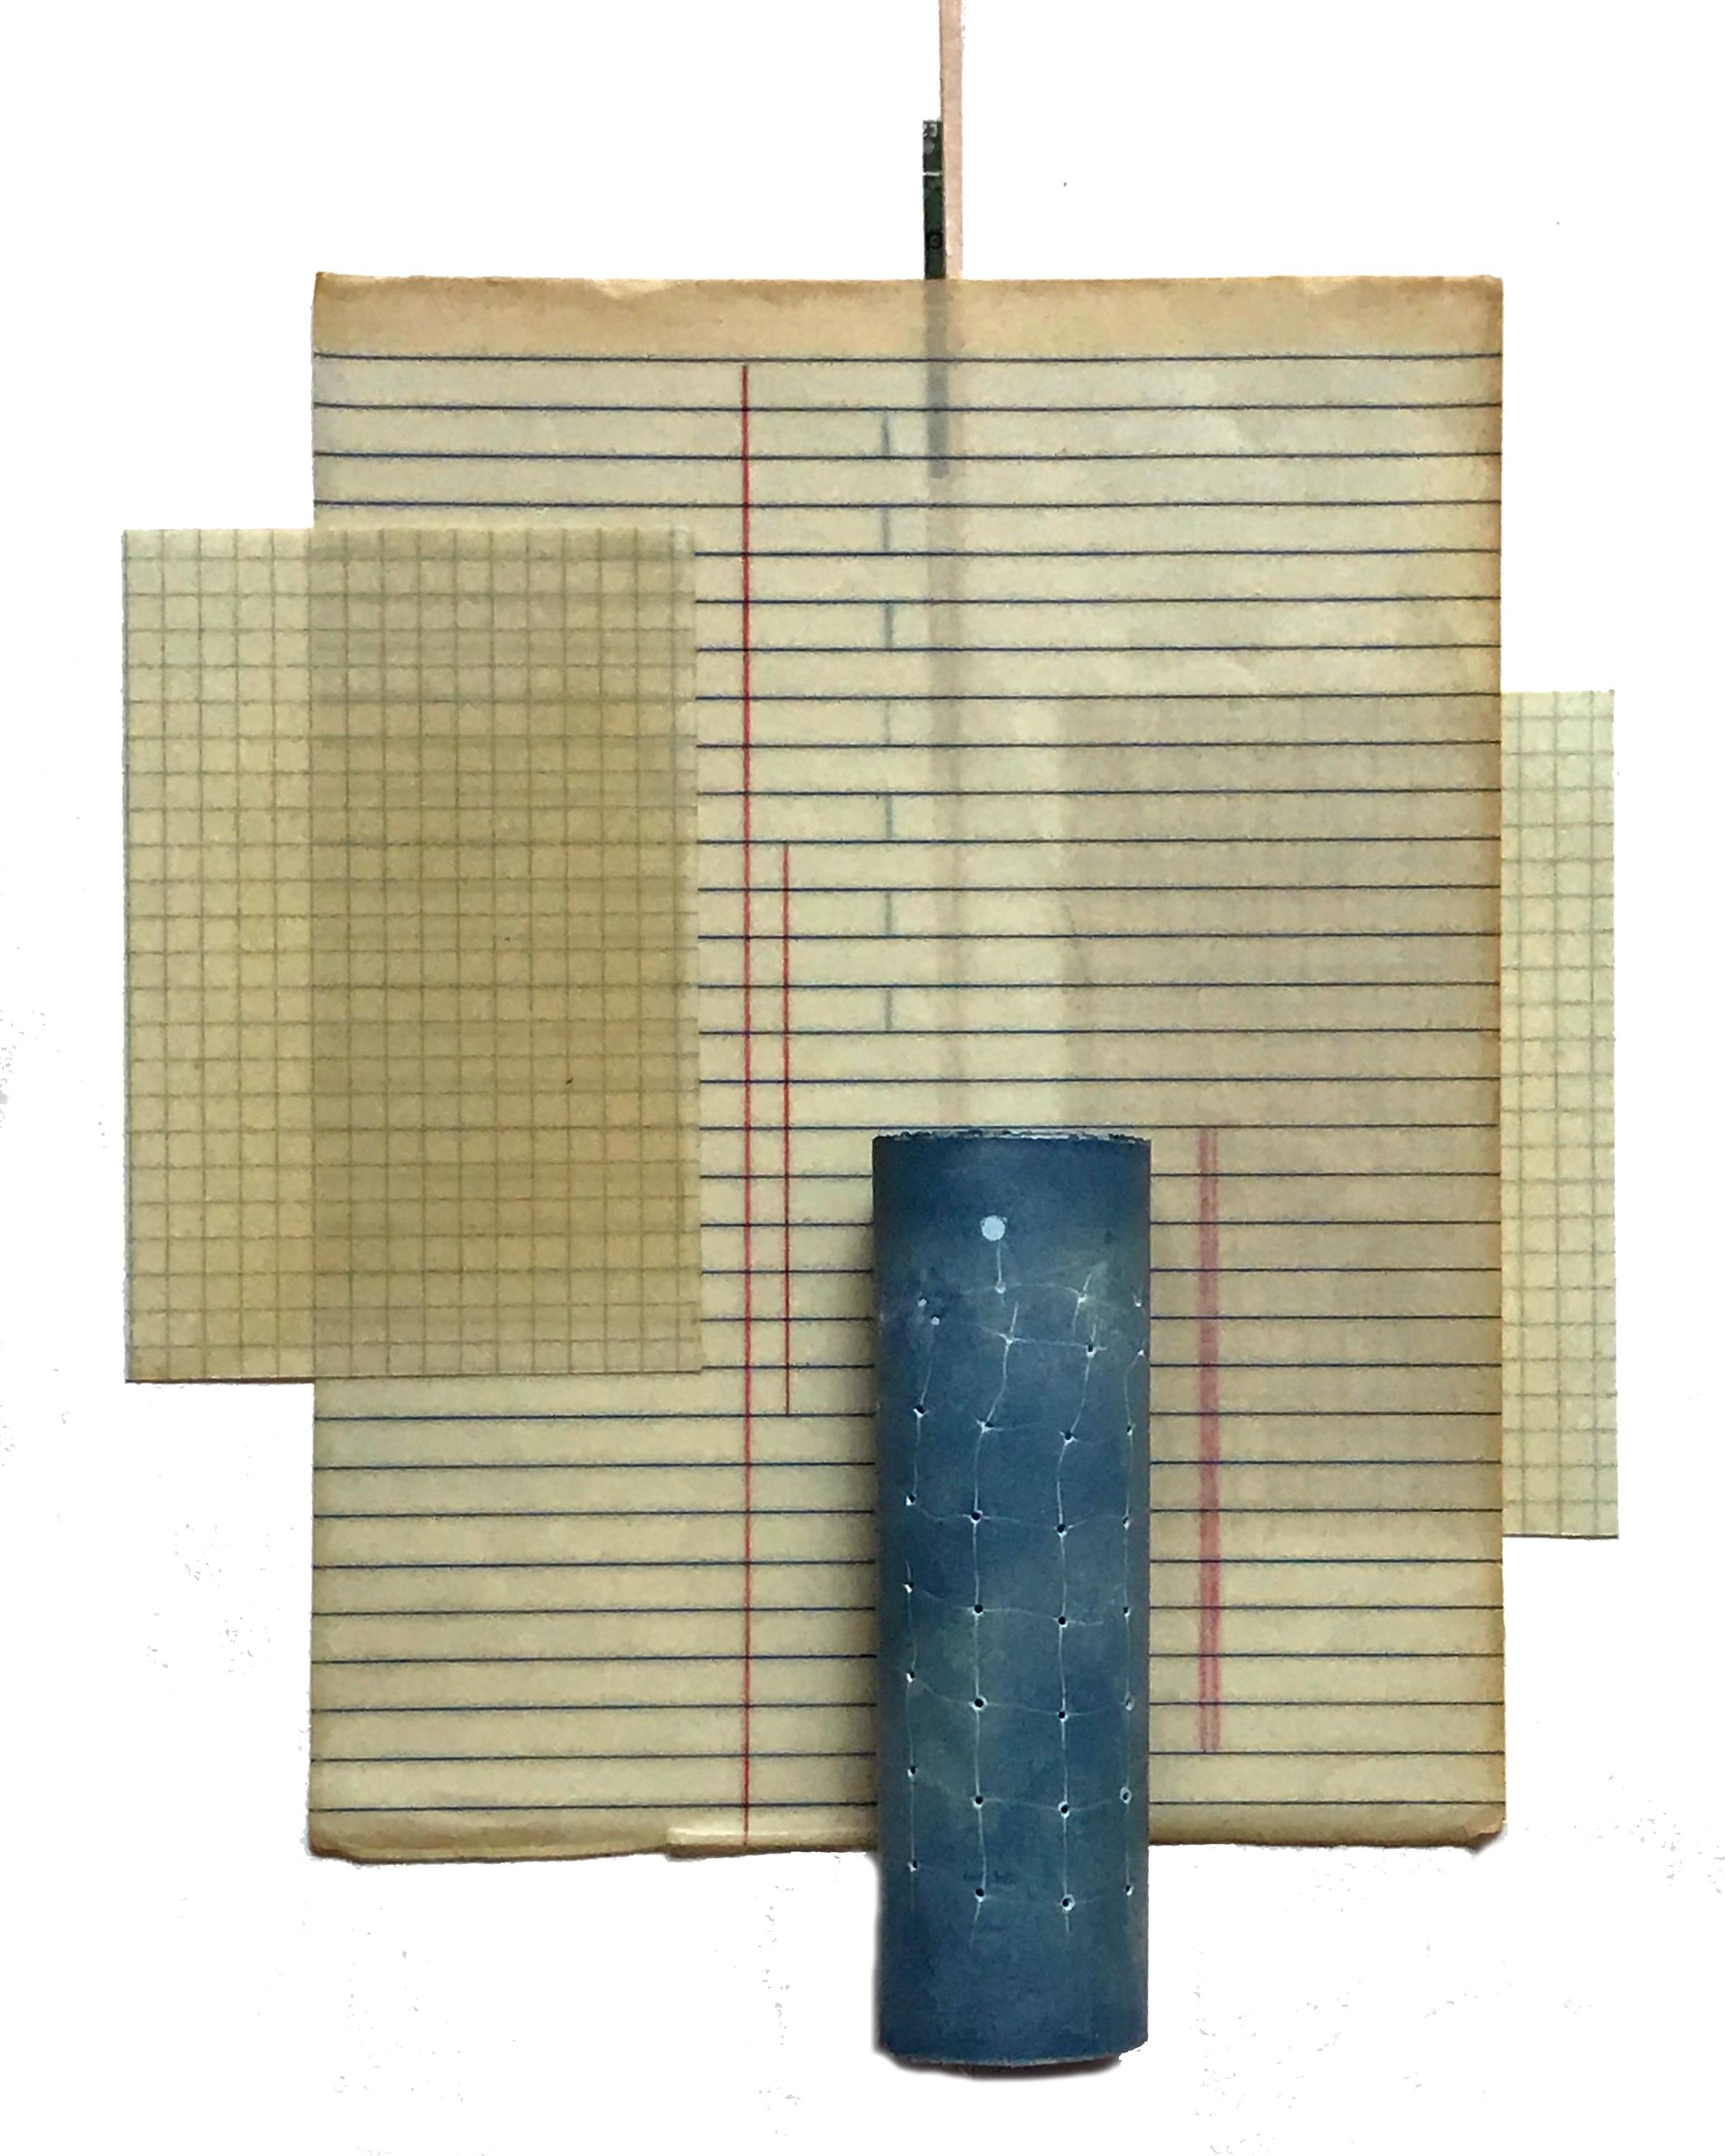 Jo Yarrington, blue cylinder with red weaving and codes, mixed media, 16 x 12 in